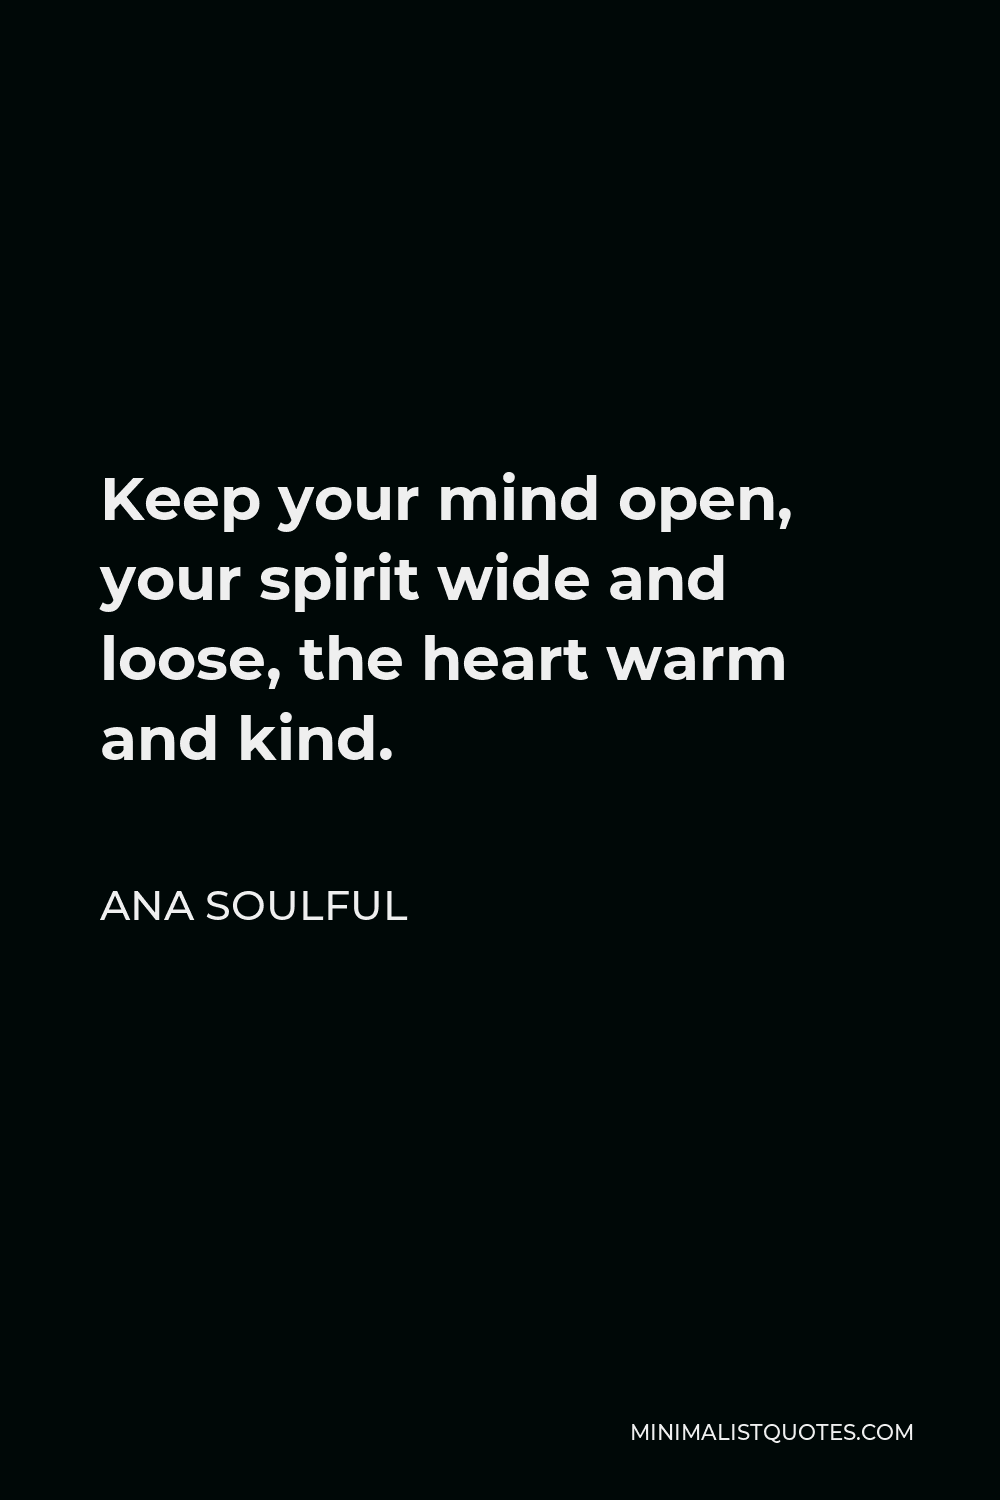 Ana Soulful Quote - Keep your mind open, your spirit wide and loose, the heart warm and kind.